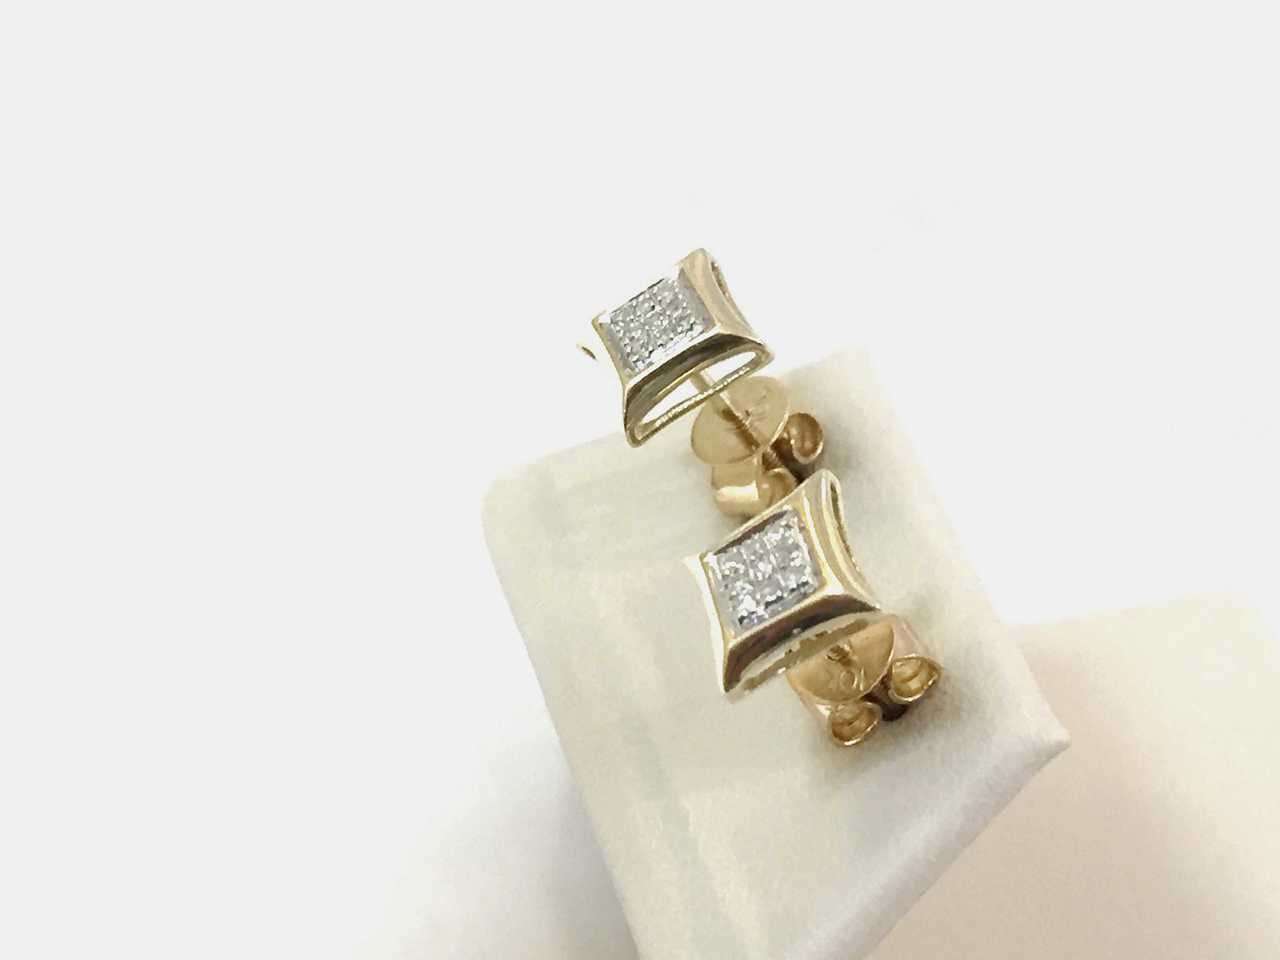 images jewelrychicago zirconia k earrings cubic on cz gold pinterest yellow letters initial stud letter best